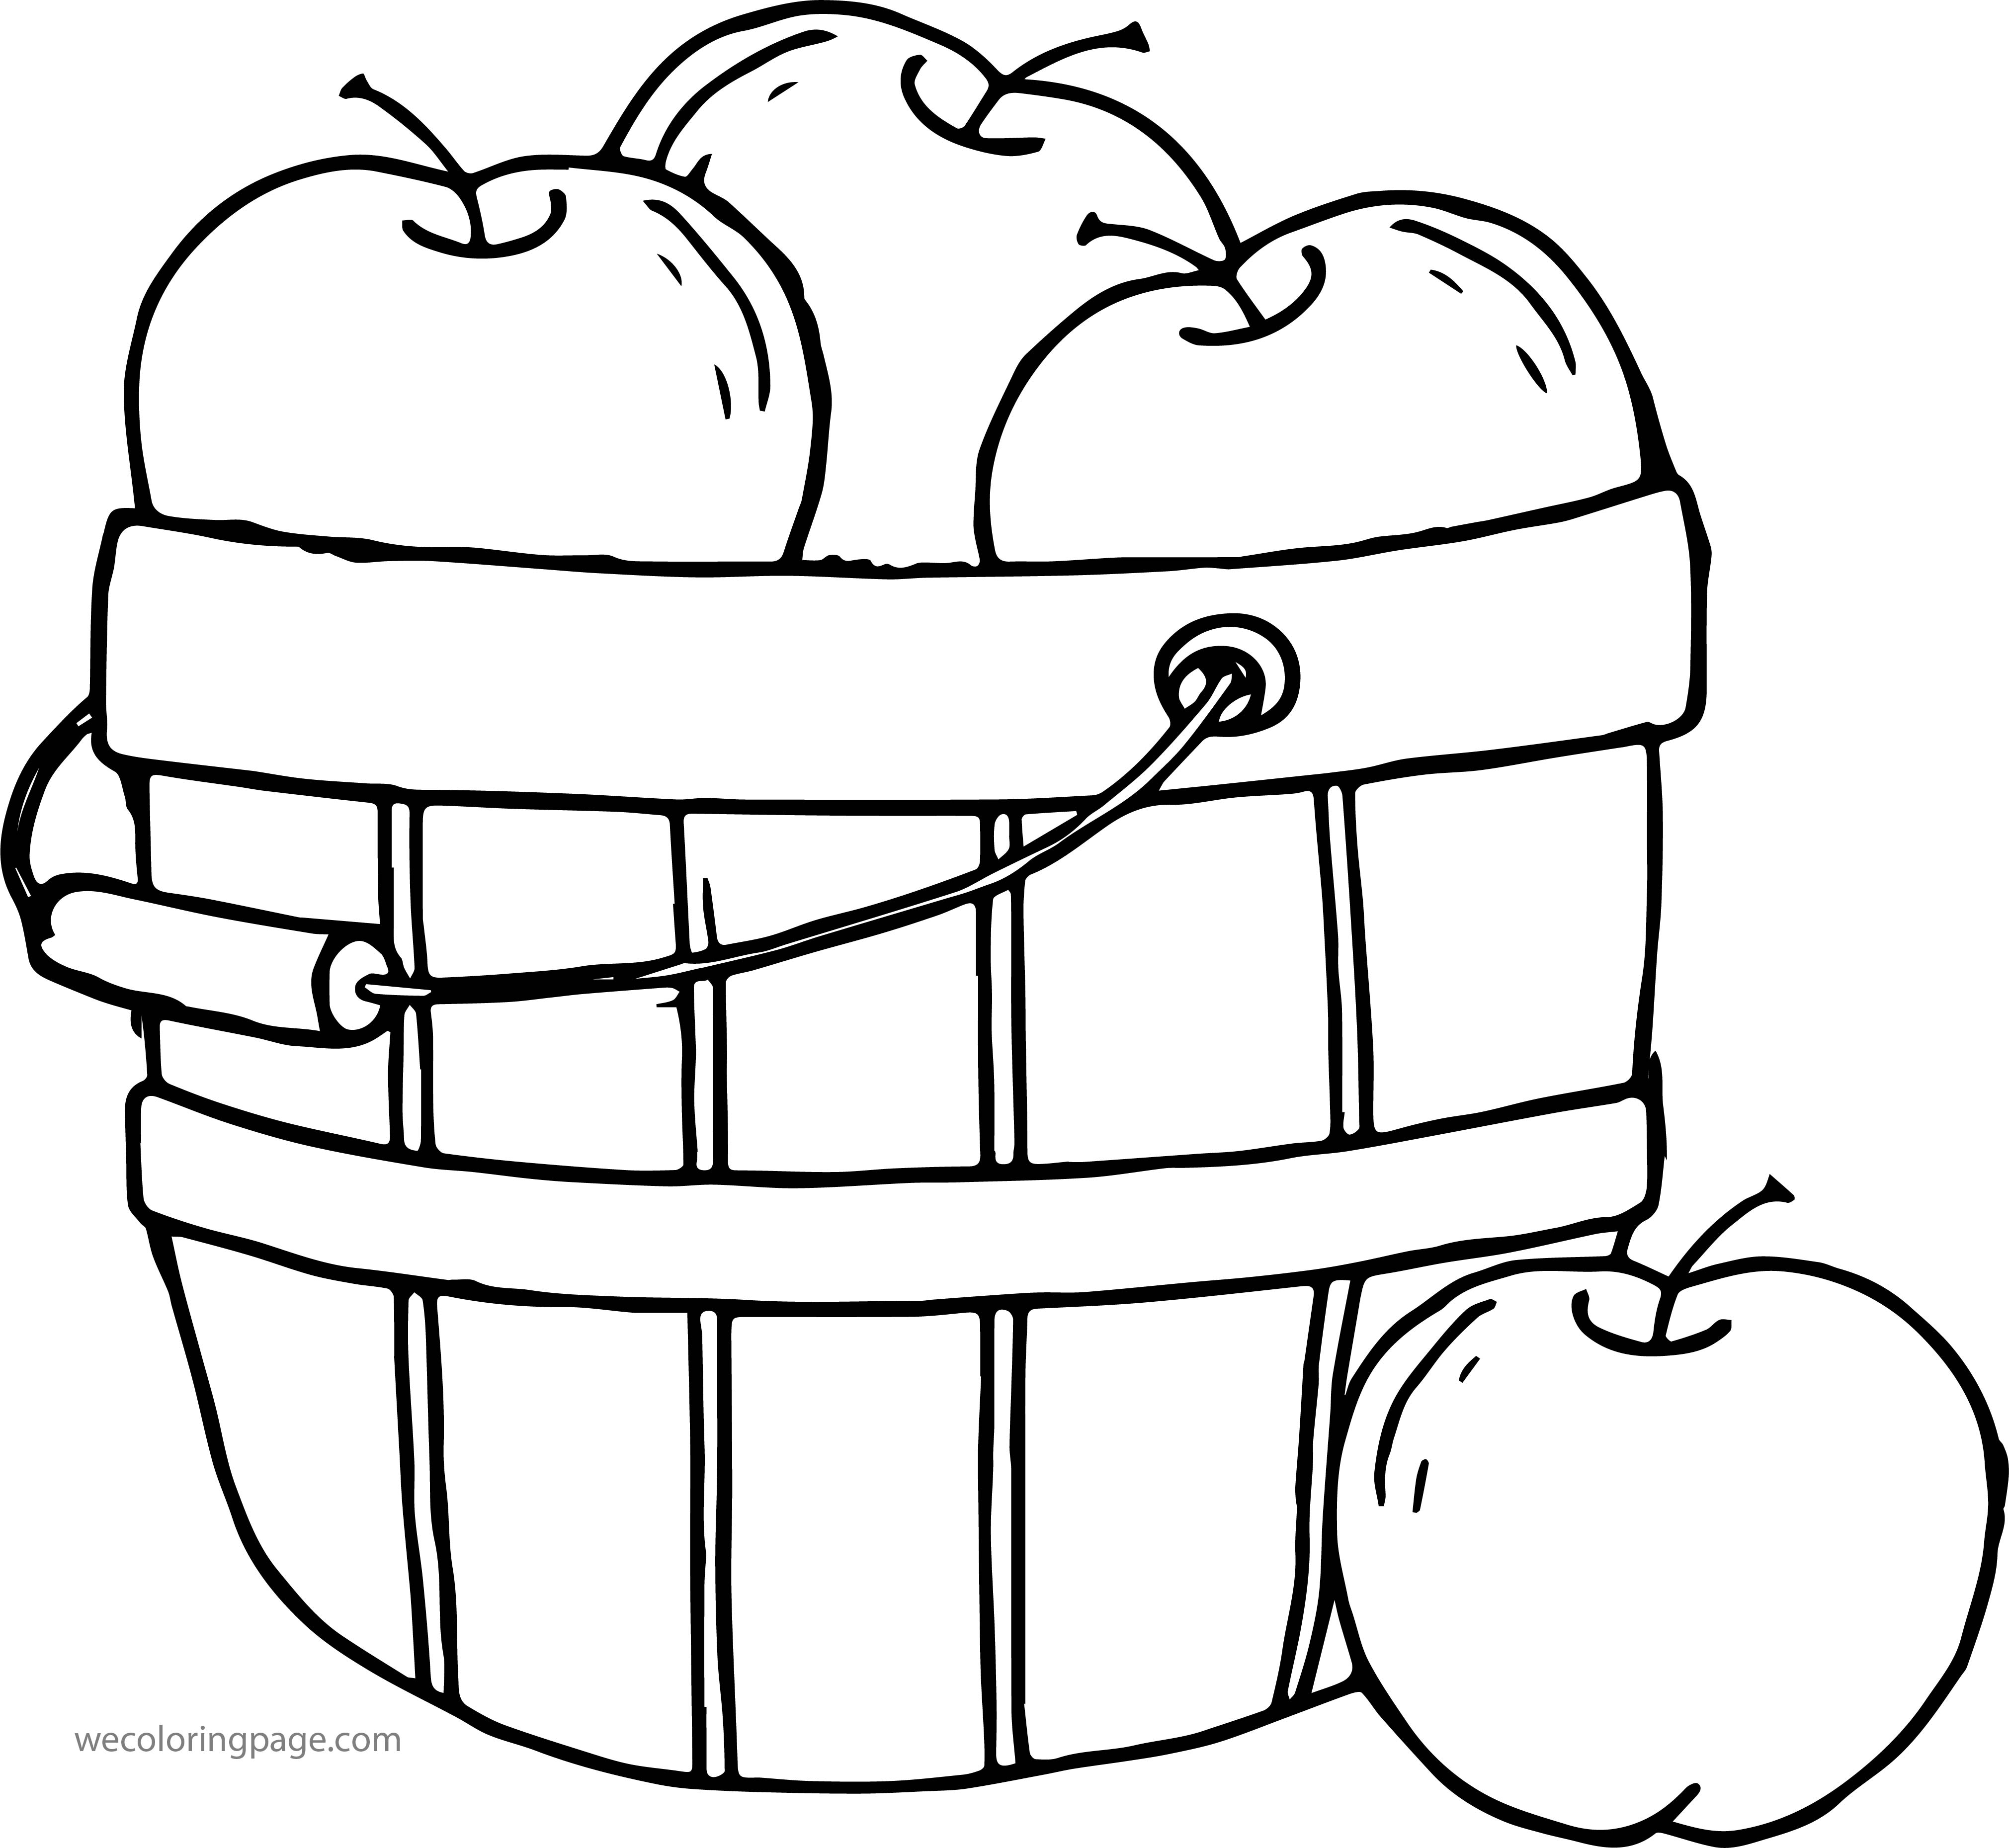 Apple Bucket Coloring Page